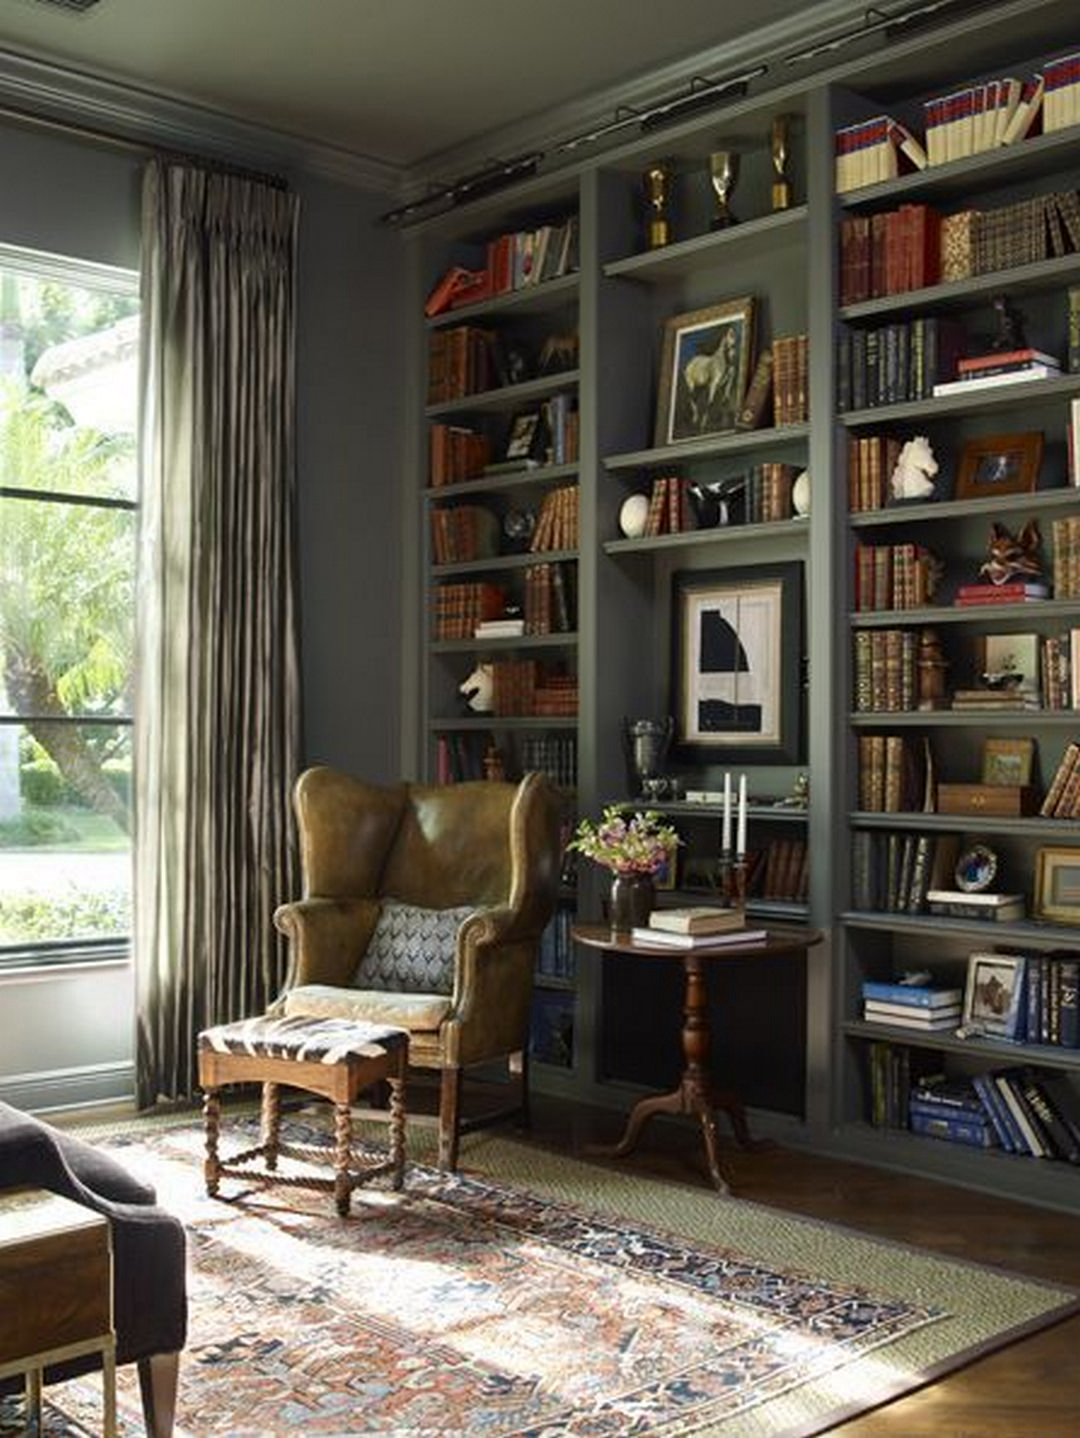 Home Library Decorating Ideas: 16 Homemade Interior Design Ideas